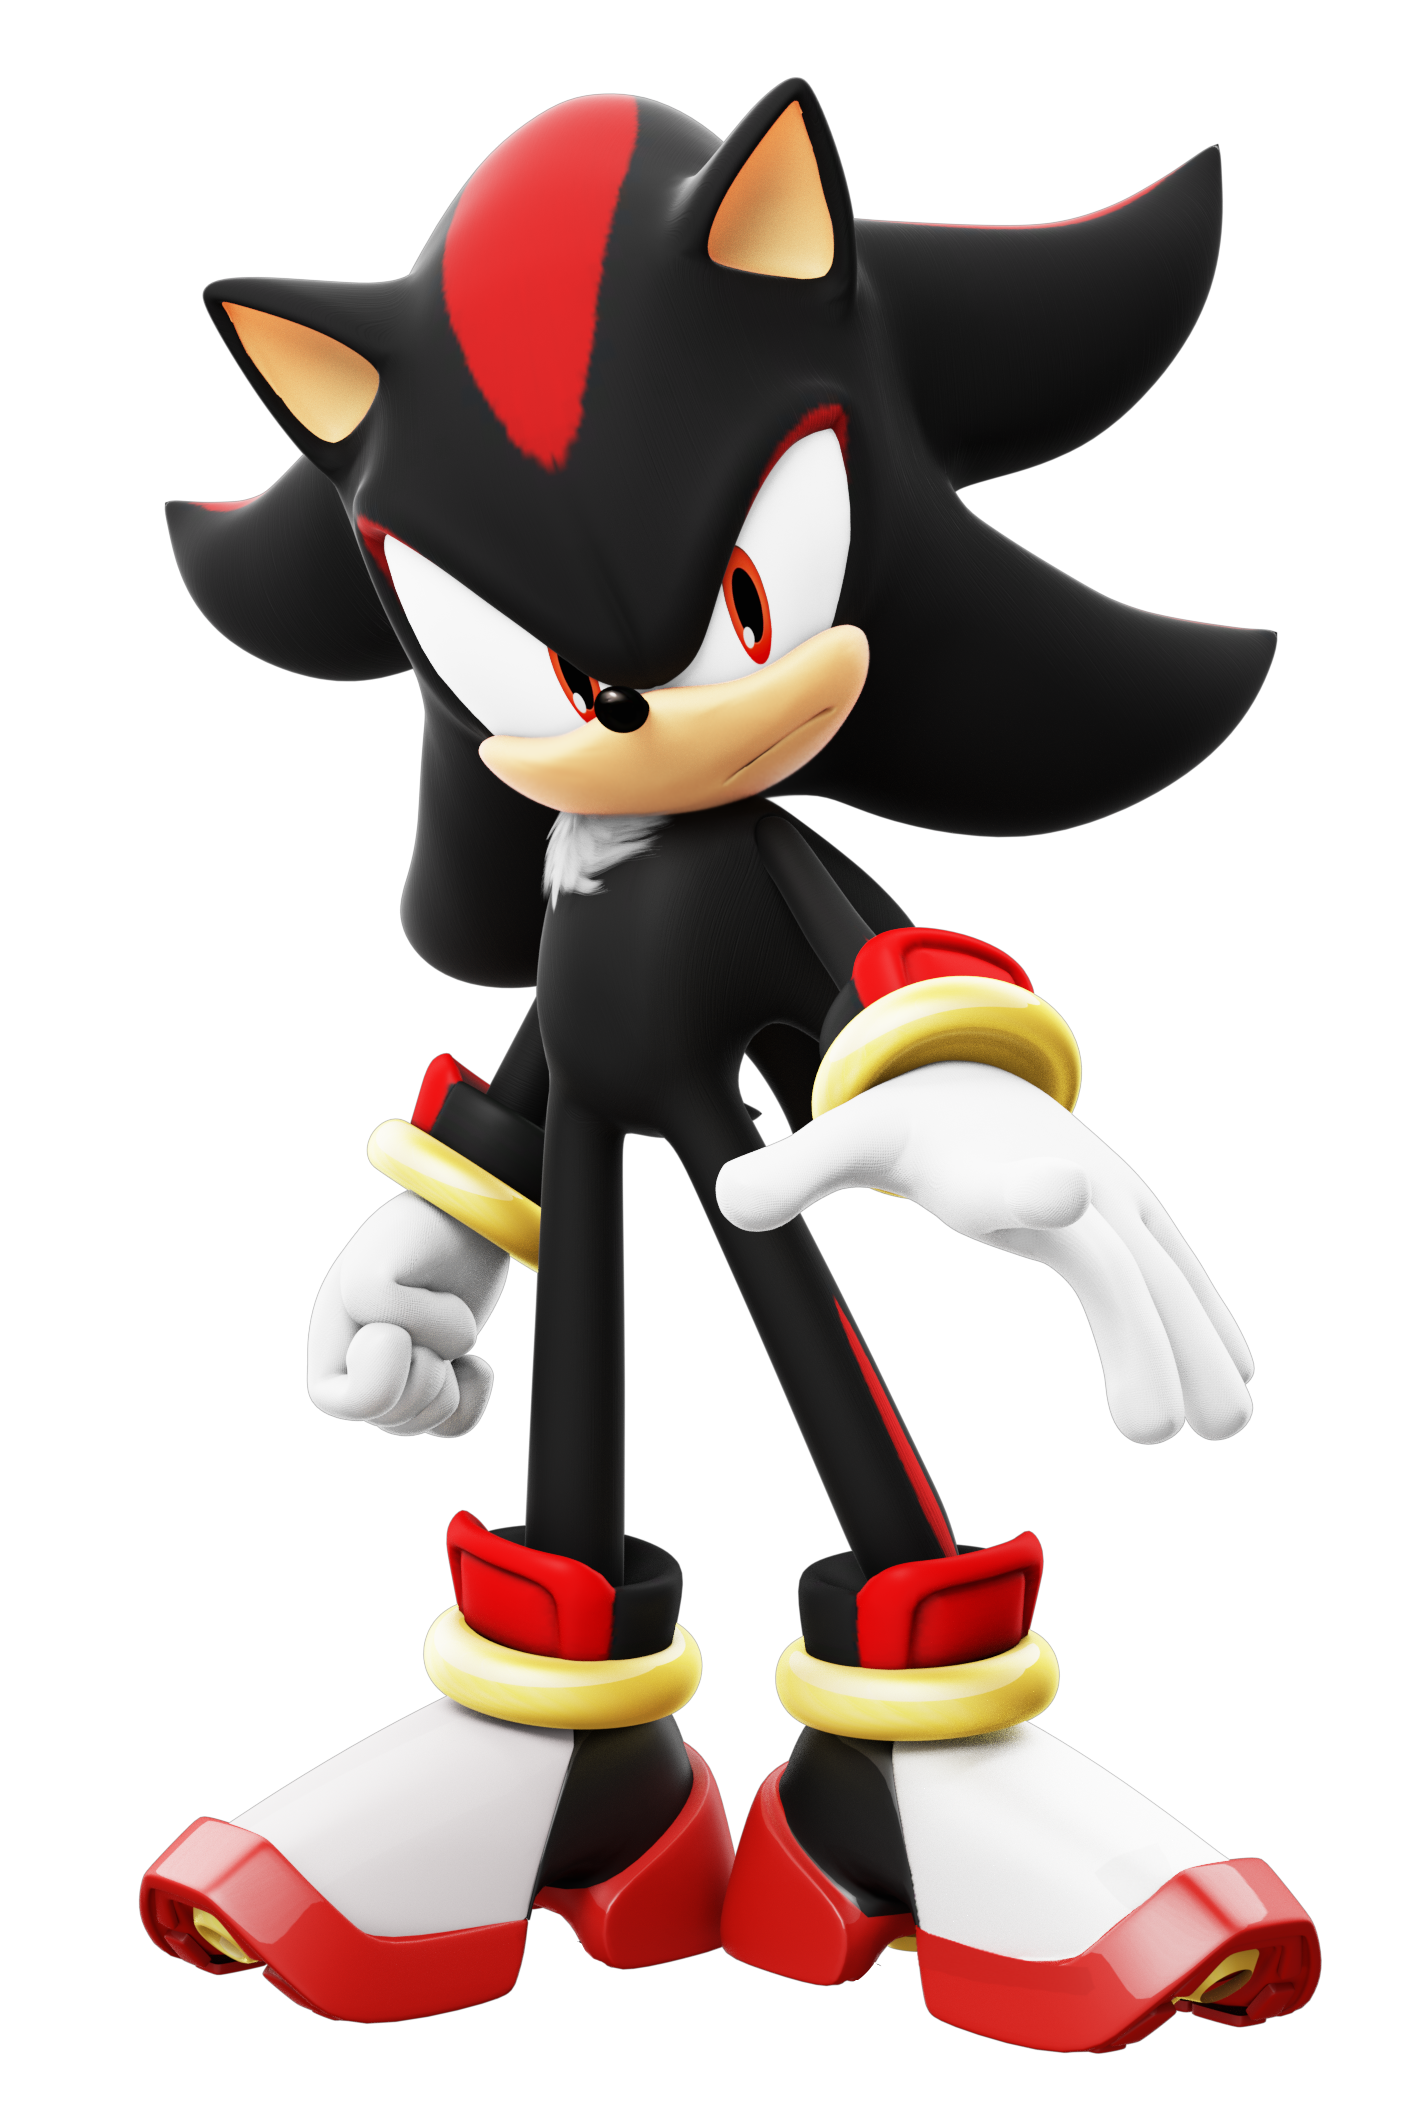 Download Sonic Toy Figurine Adventure Shadow The Hedgehog Hq Png Image In Different Resolution Freepngimg